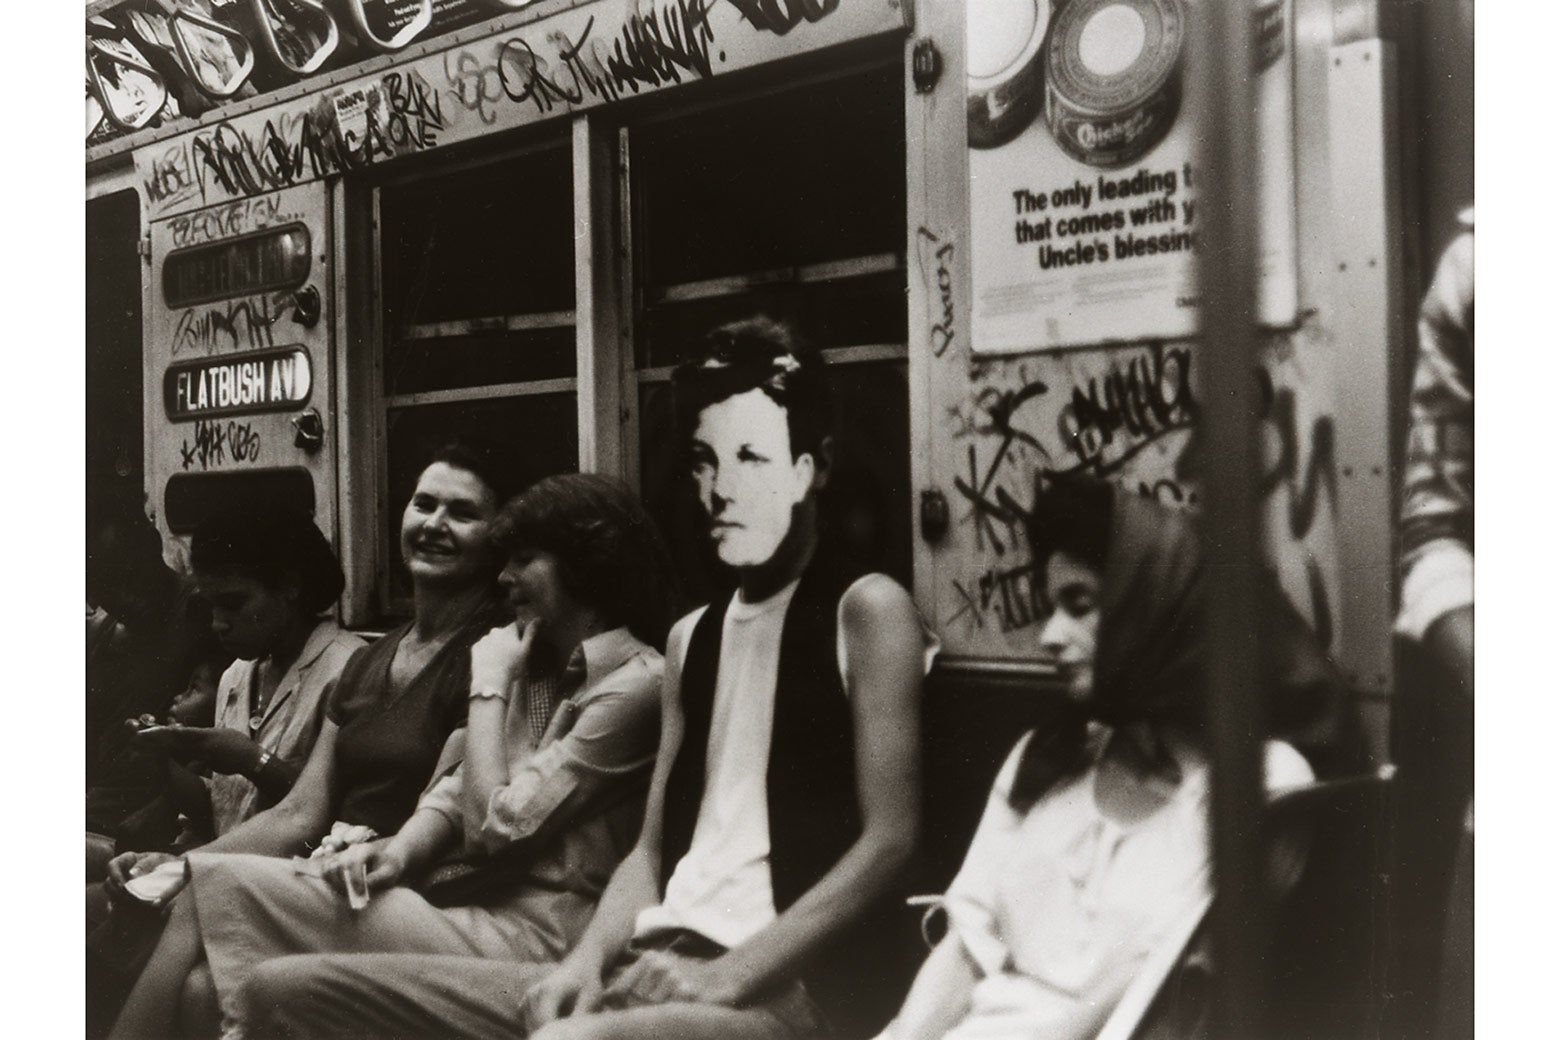 David Wojnarowicz's photo Arthur Rimbaud in New York.